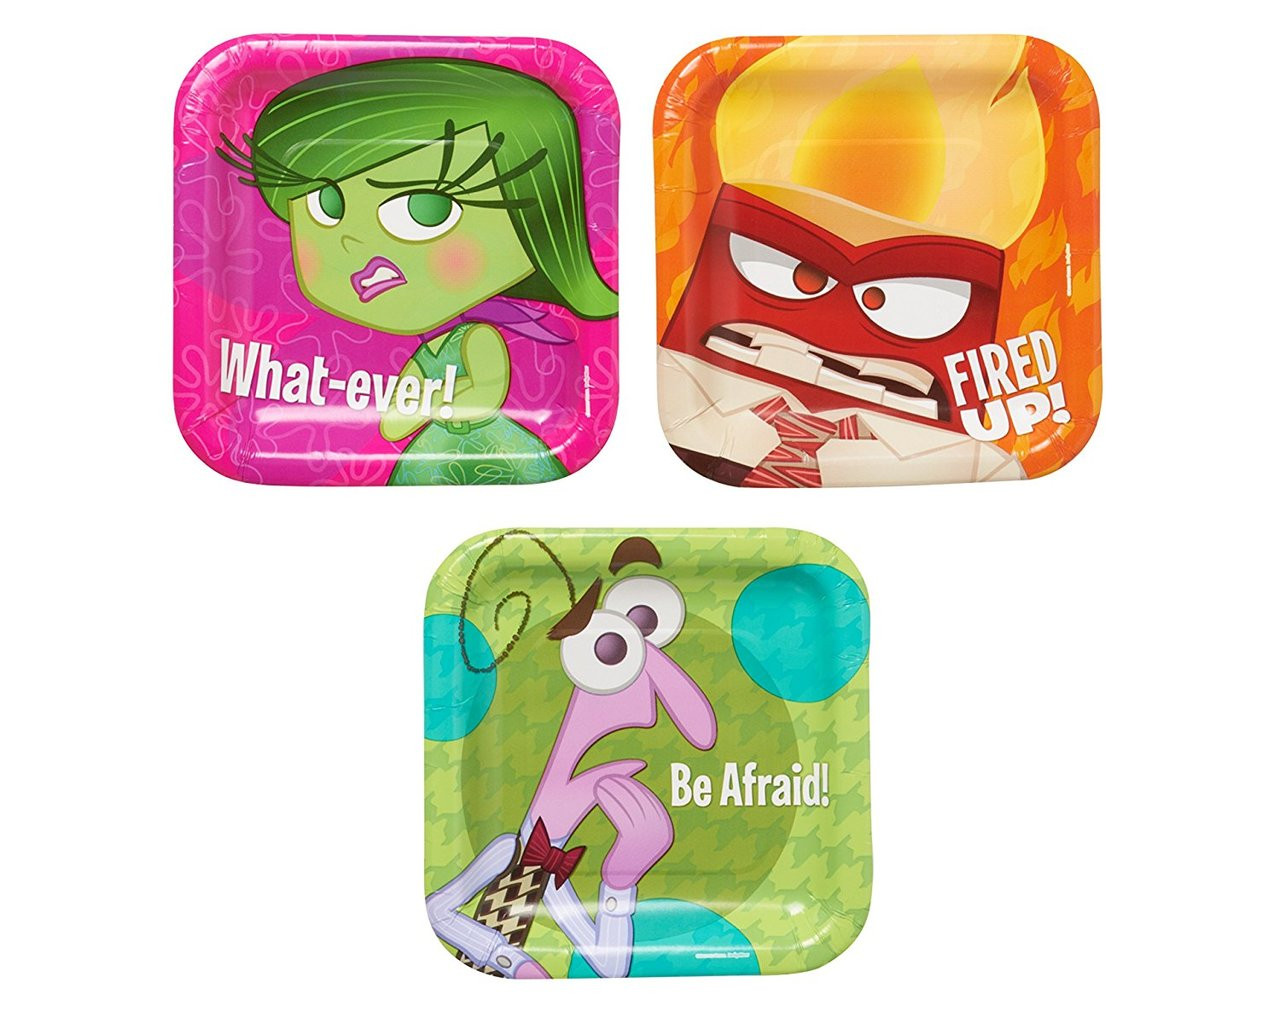 Inside Out 7 Inch Small Dessert Party Cake Plates- Be Afraid, What ever, Fired